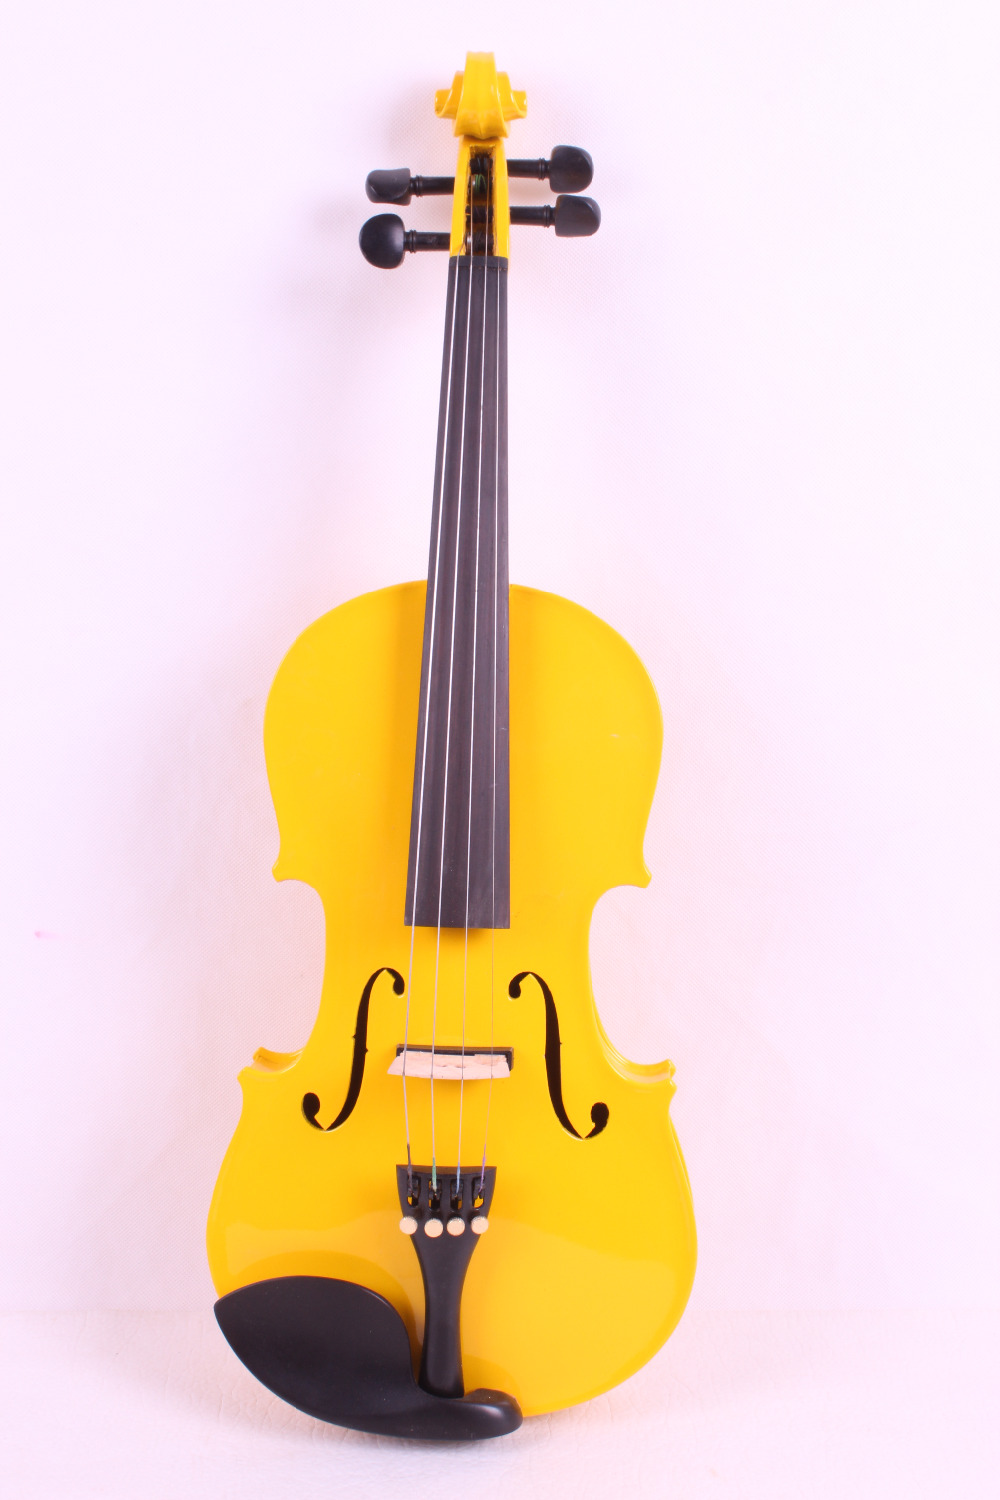 4/4 PINK 4 string Electric Acoustic Violin Solid Wood Nice Sound red  color BLACK  WHITE  BLUE   1-11# brand new handmade colorful electric acoustic violin violino 4 4 violin bow case perfect sound